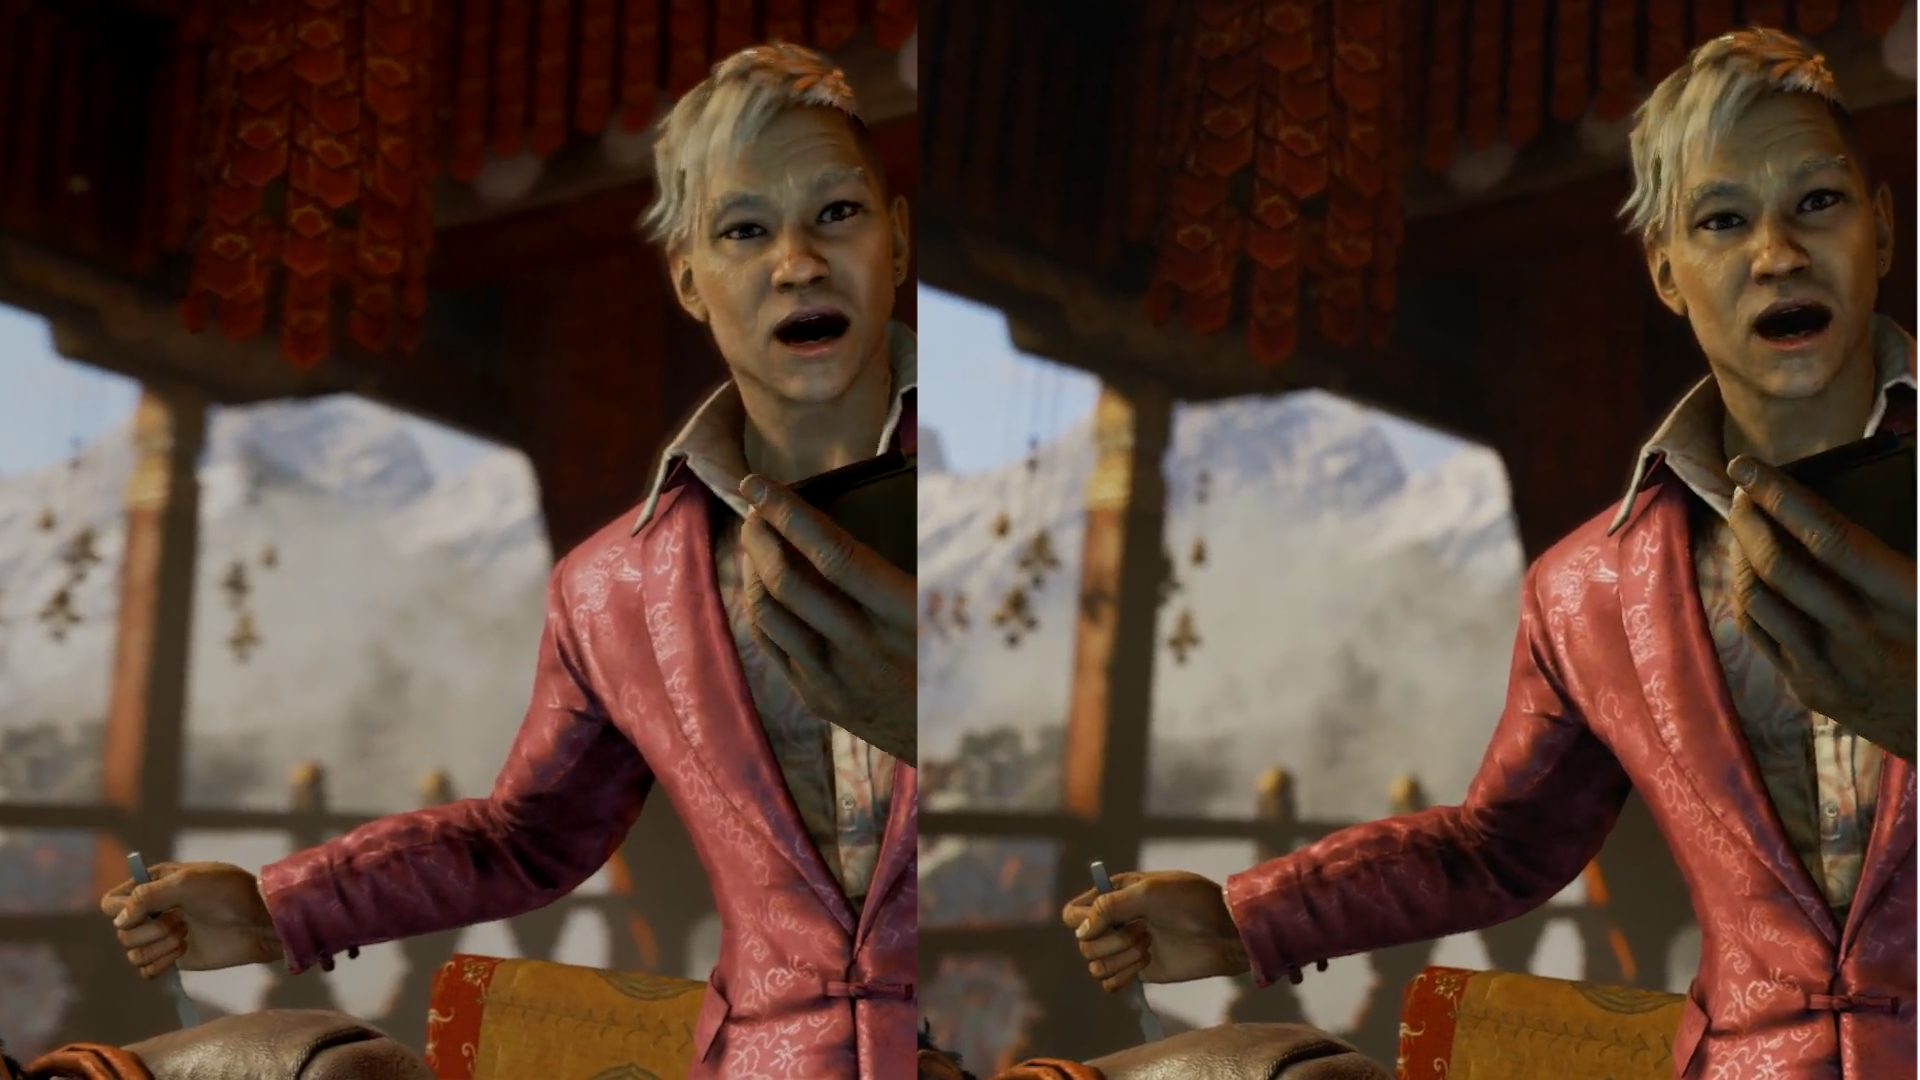 Xbox One Vs Ps4 Graphics Side By Side 900p, 1080p or 4K? Gam...